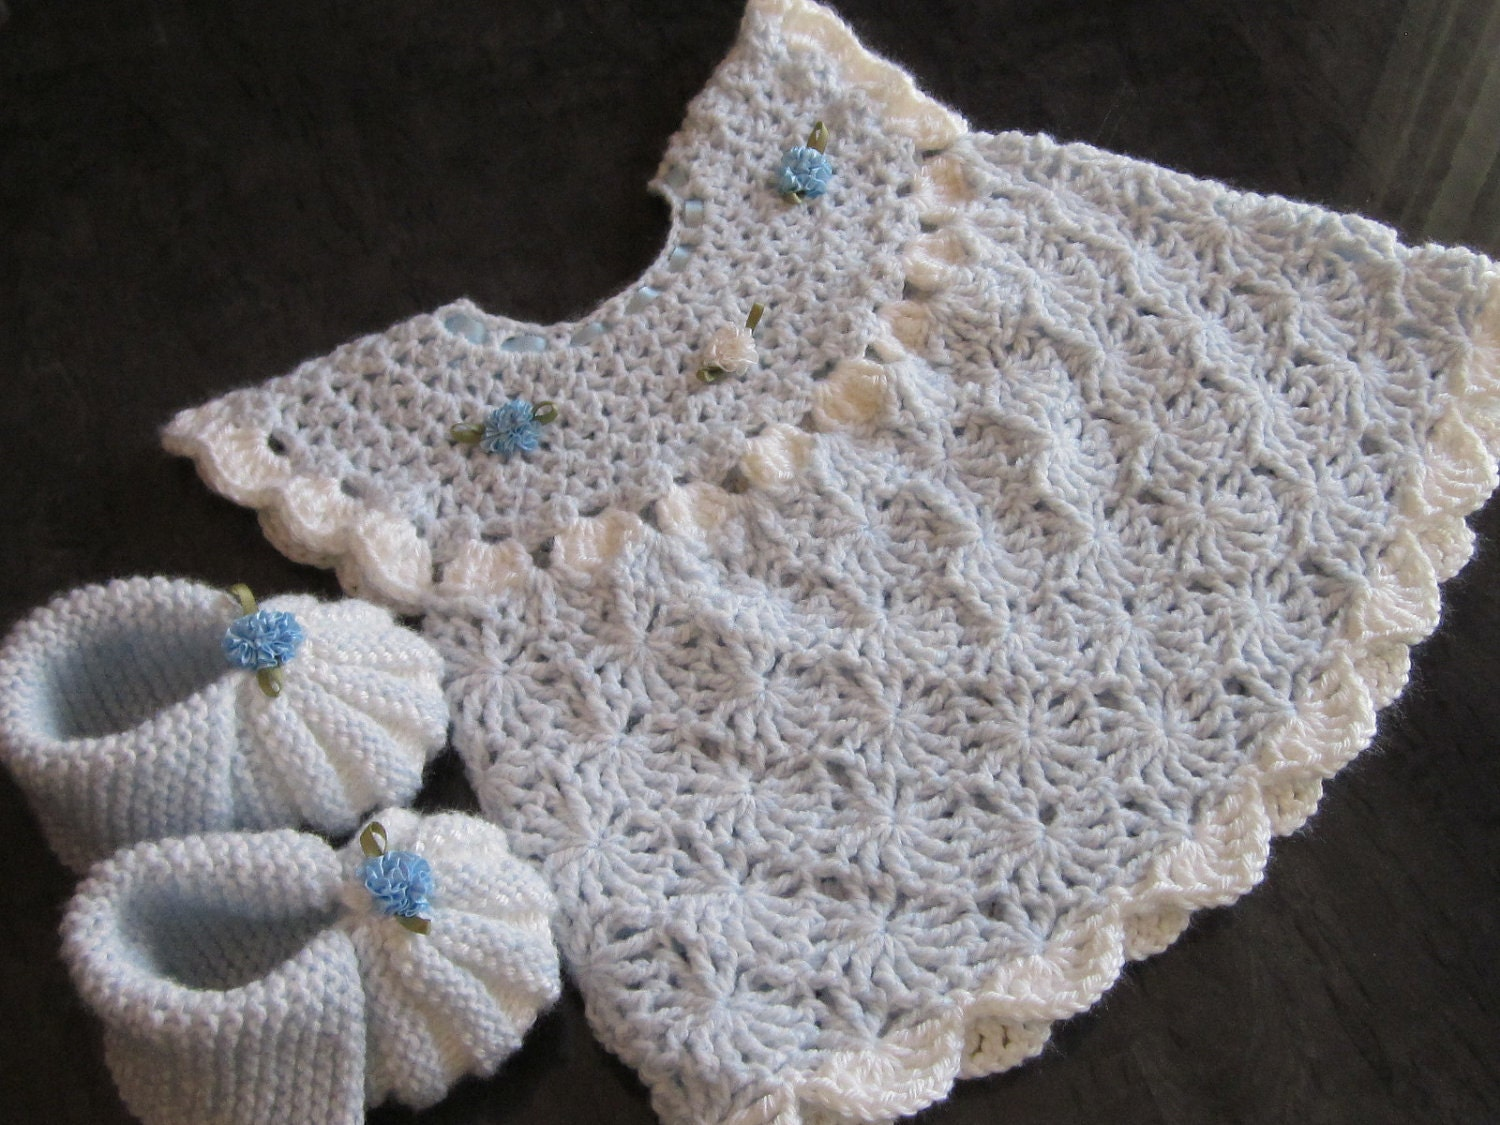 Crochet Patterns For Baby Stuffed Animals : Handmade Baby Crochet Dress and Booties set 0-6 month